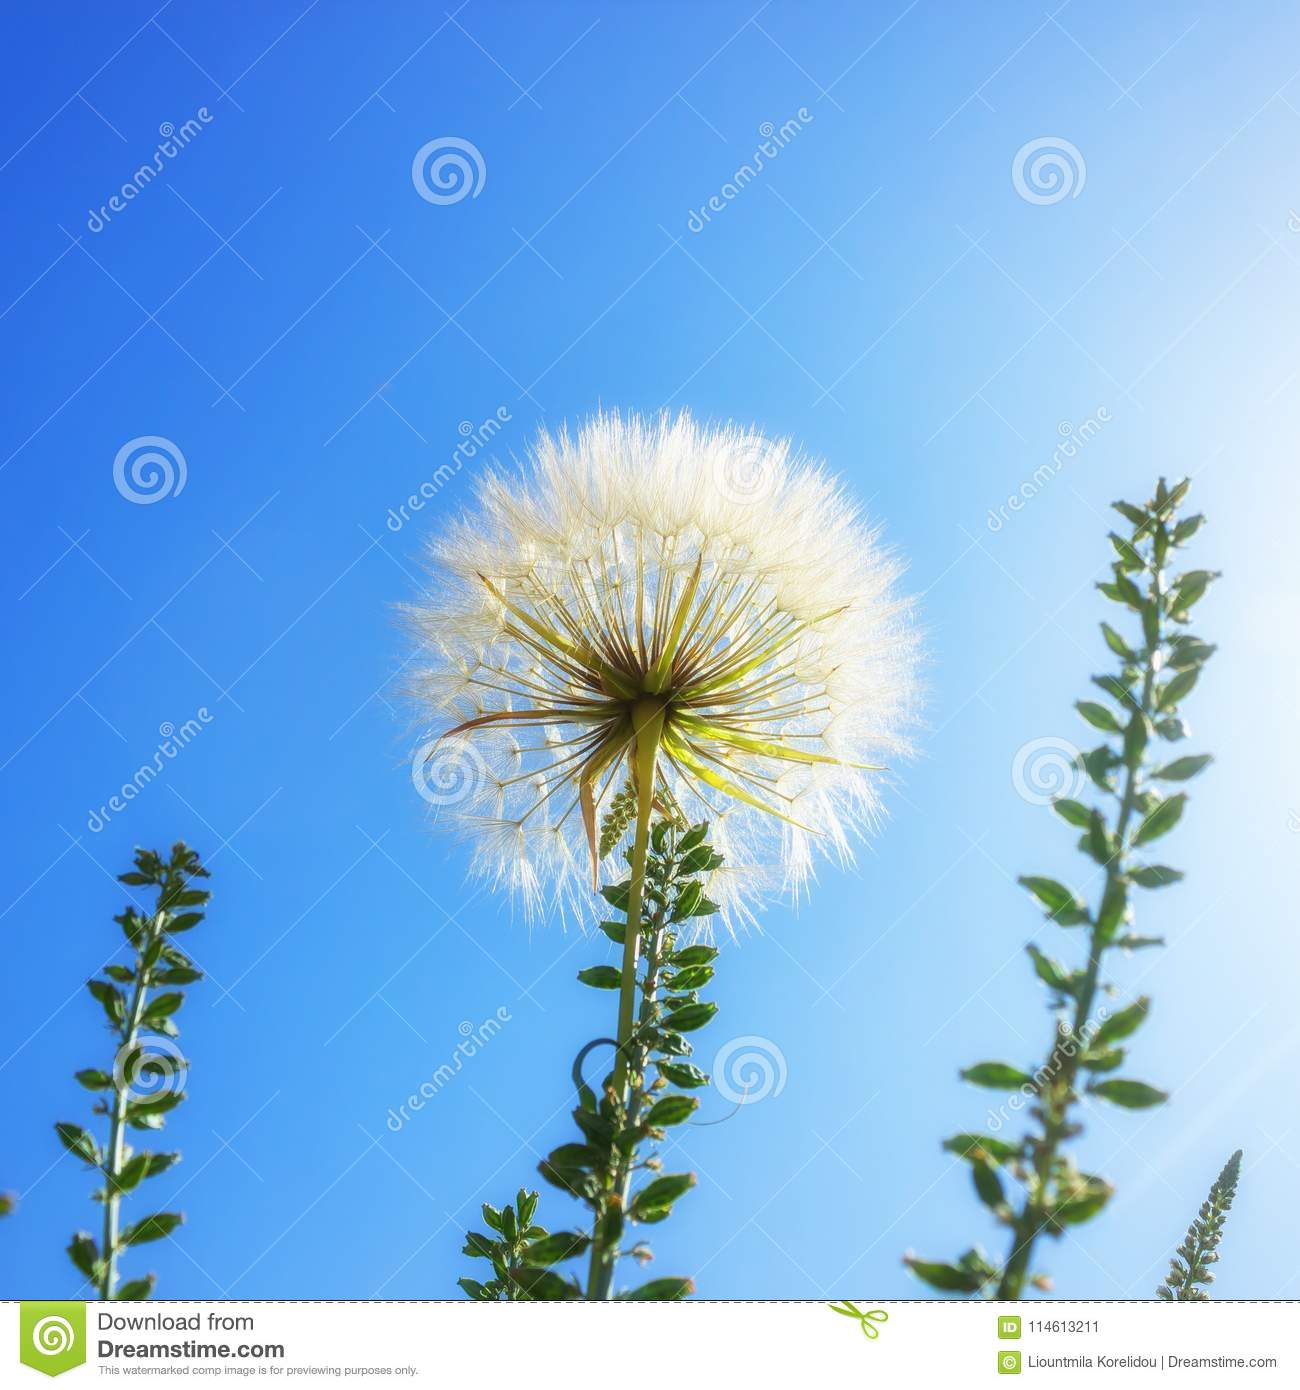 Delicate Dandelion With Seeds On Background Of Bright Blue